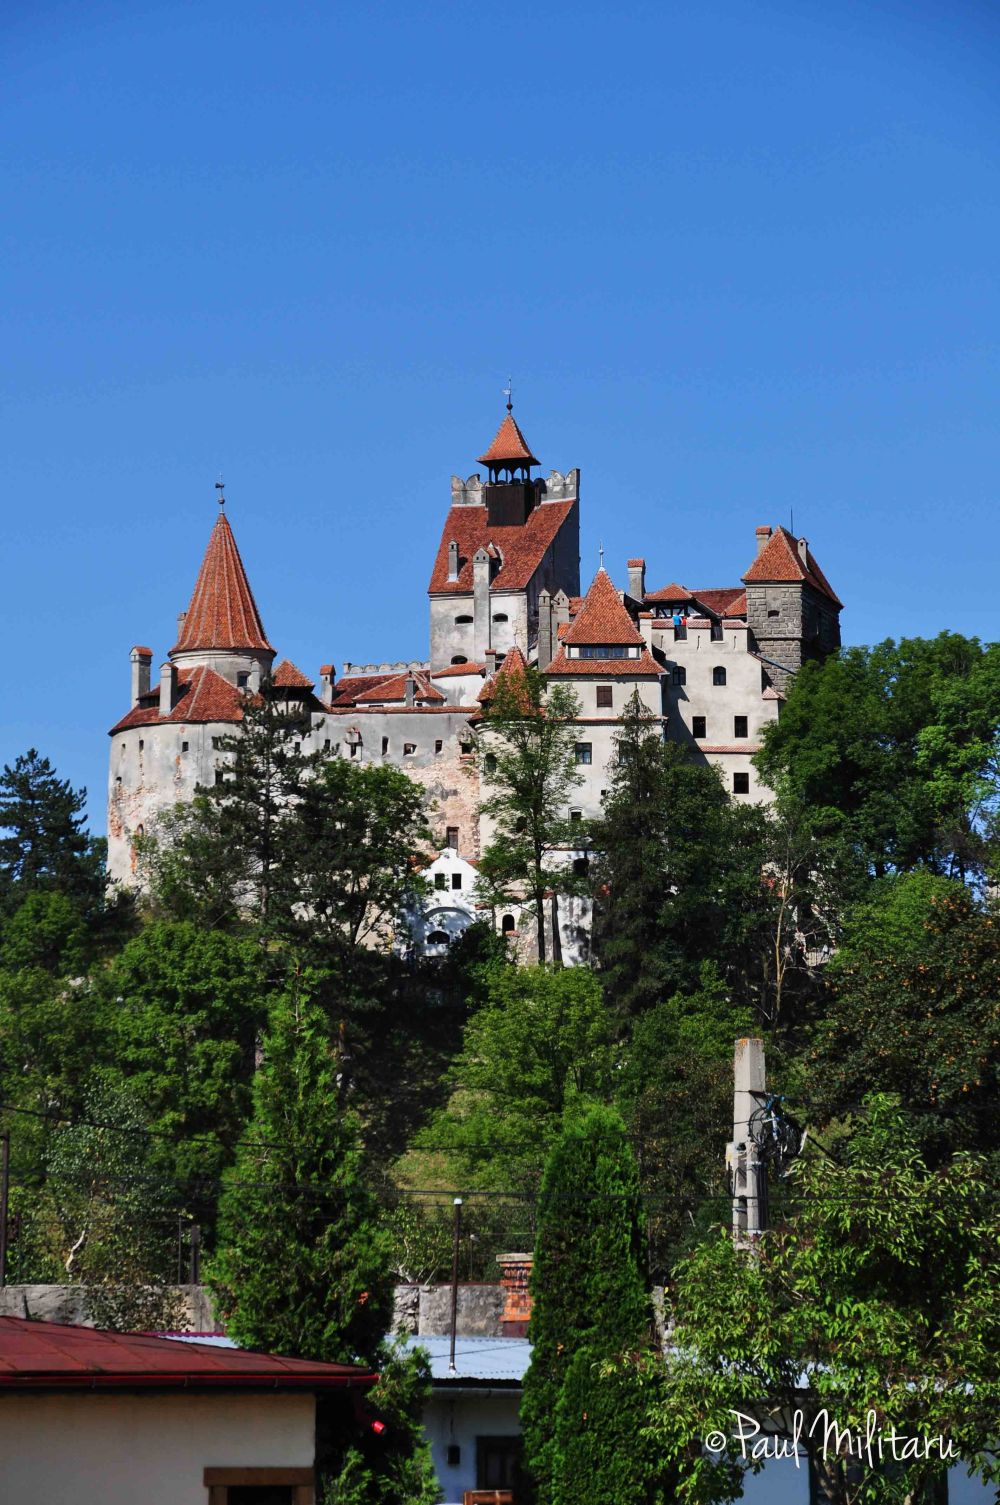 Bran (Vlad the Impaler) castle